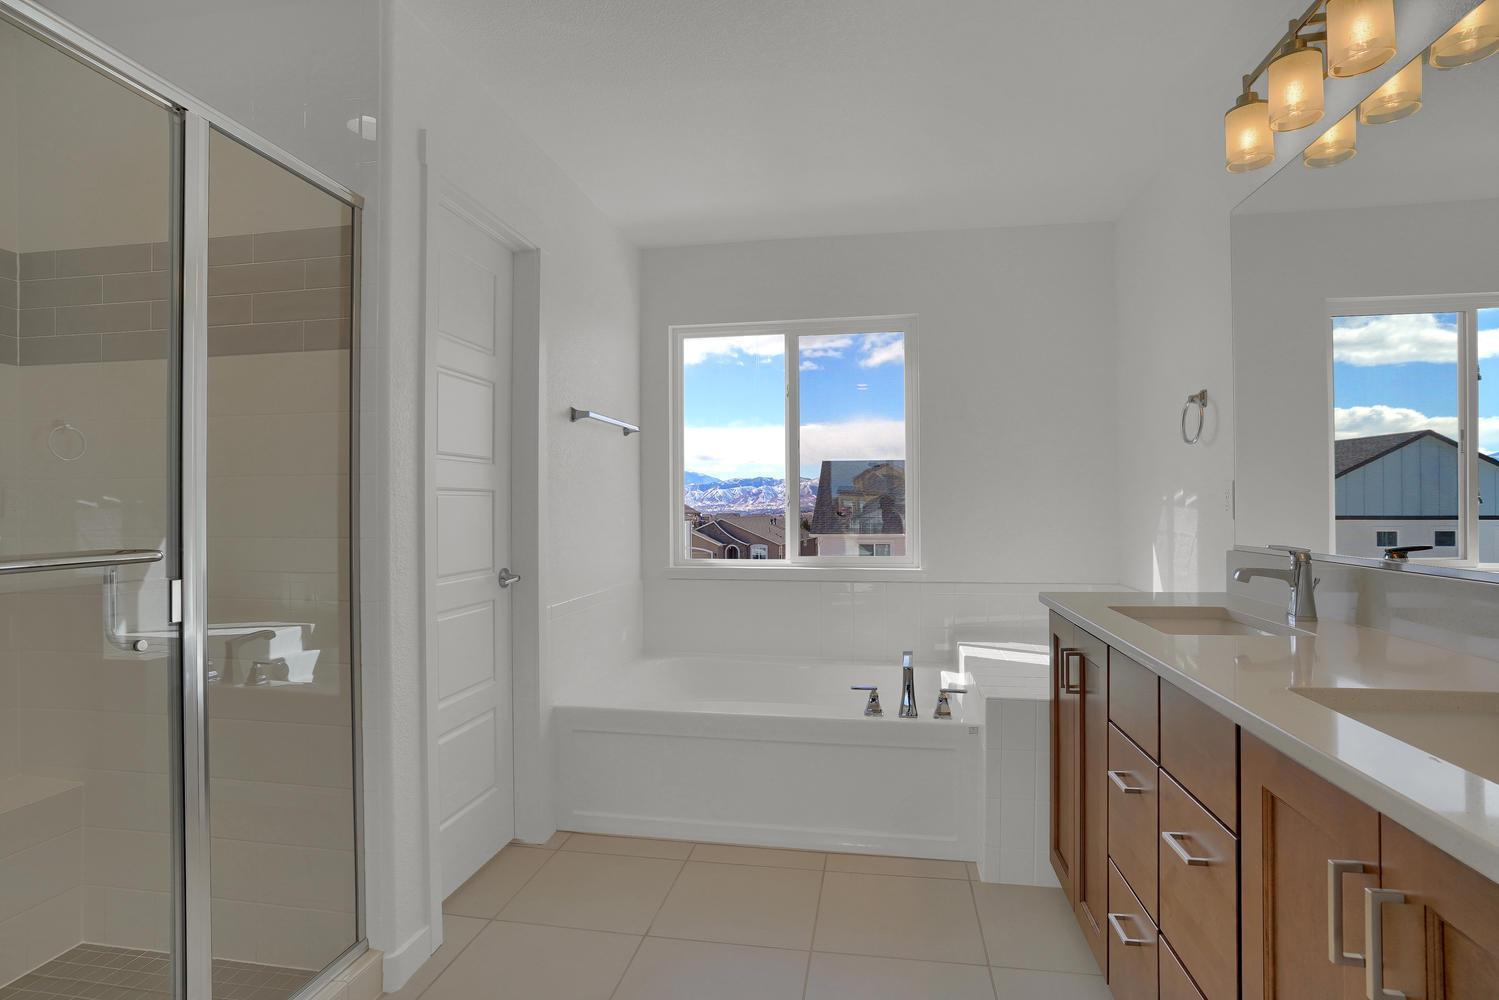 Bathroom featured in the Jackson By Keller Homes in Colorado Springs, CO